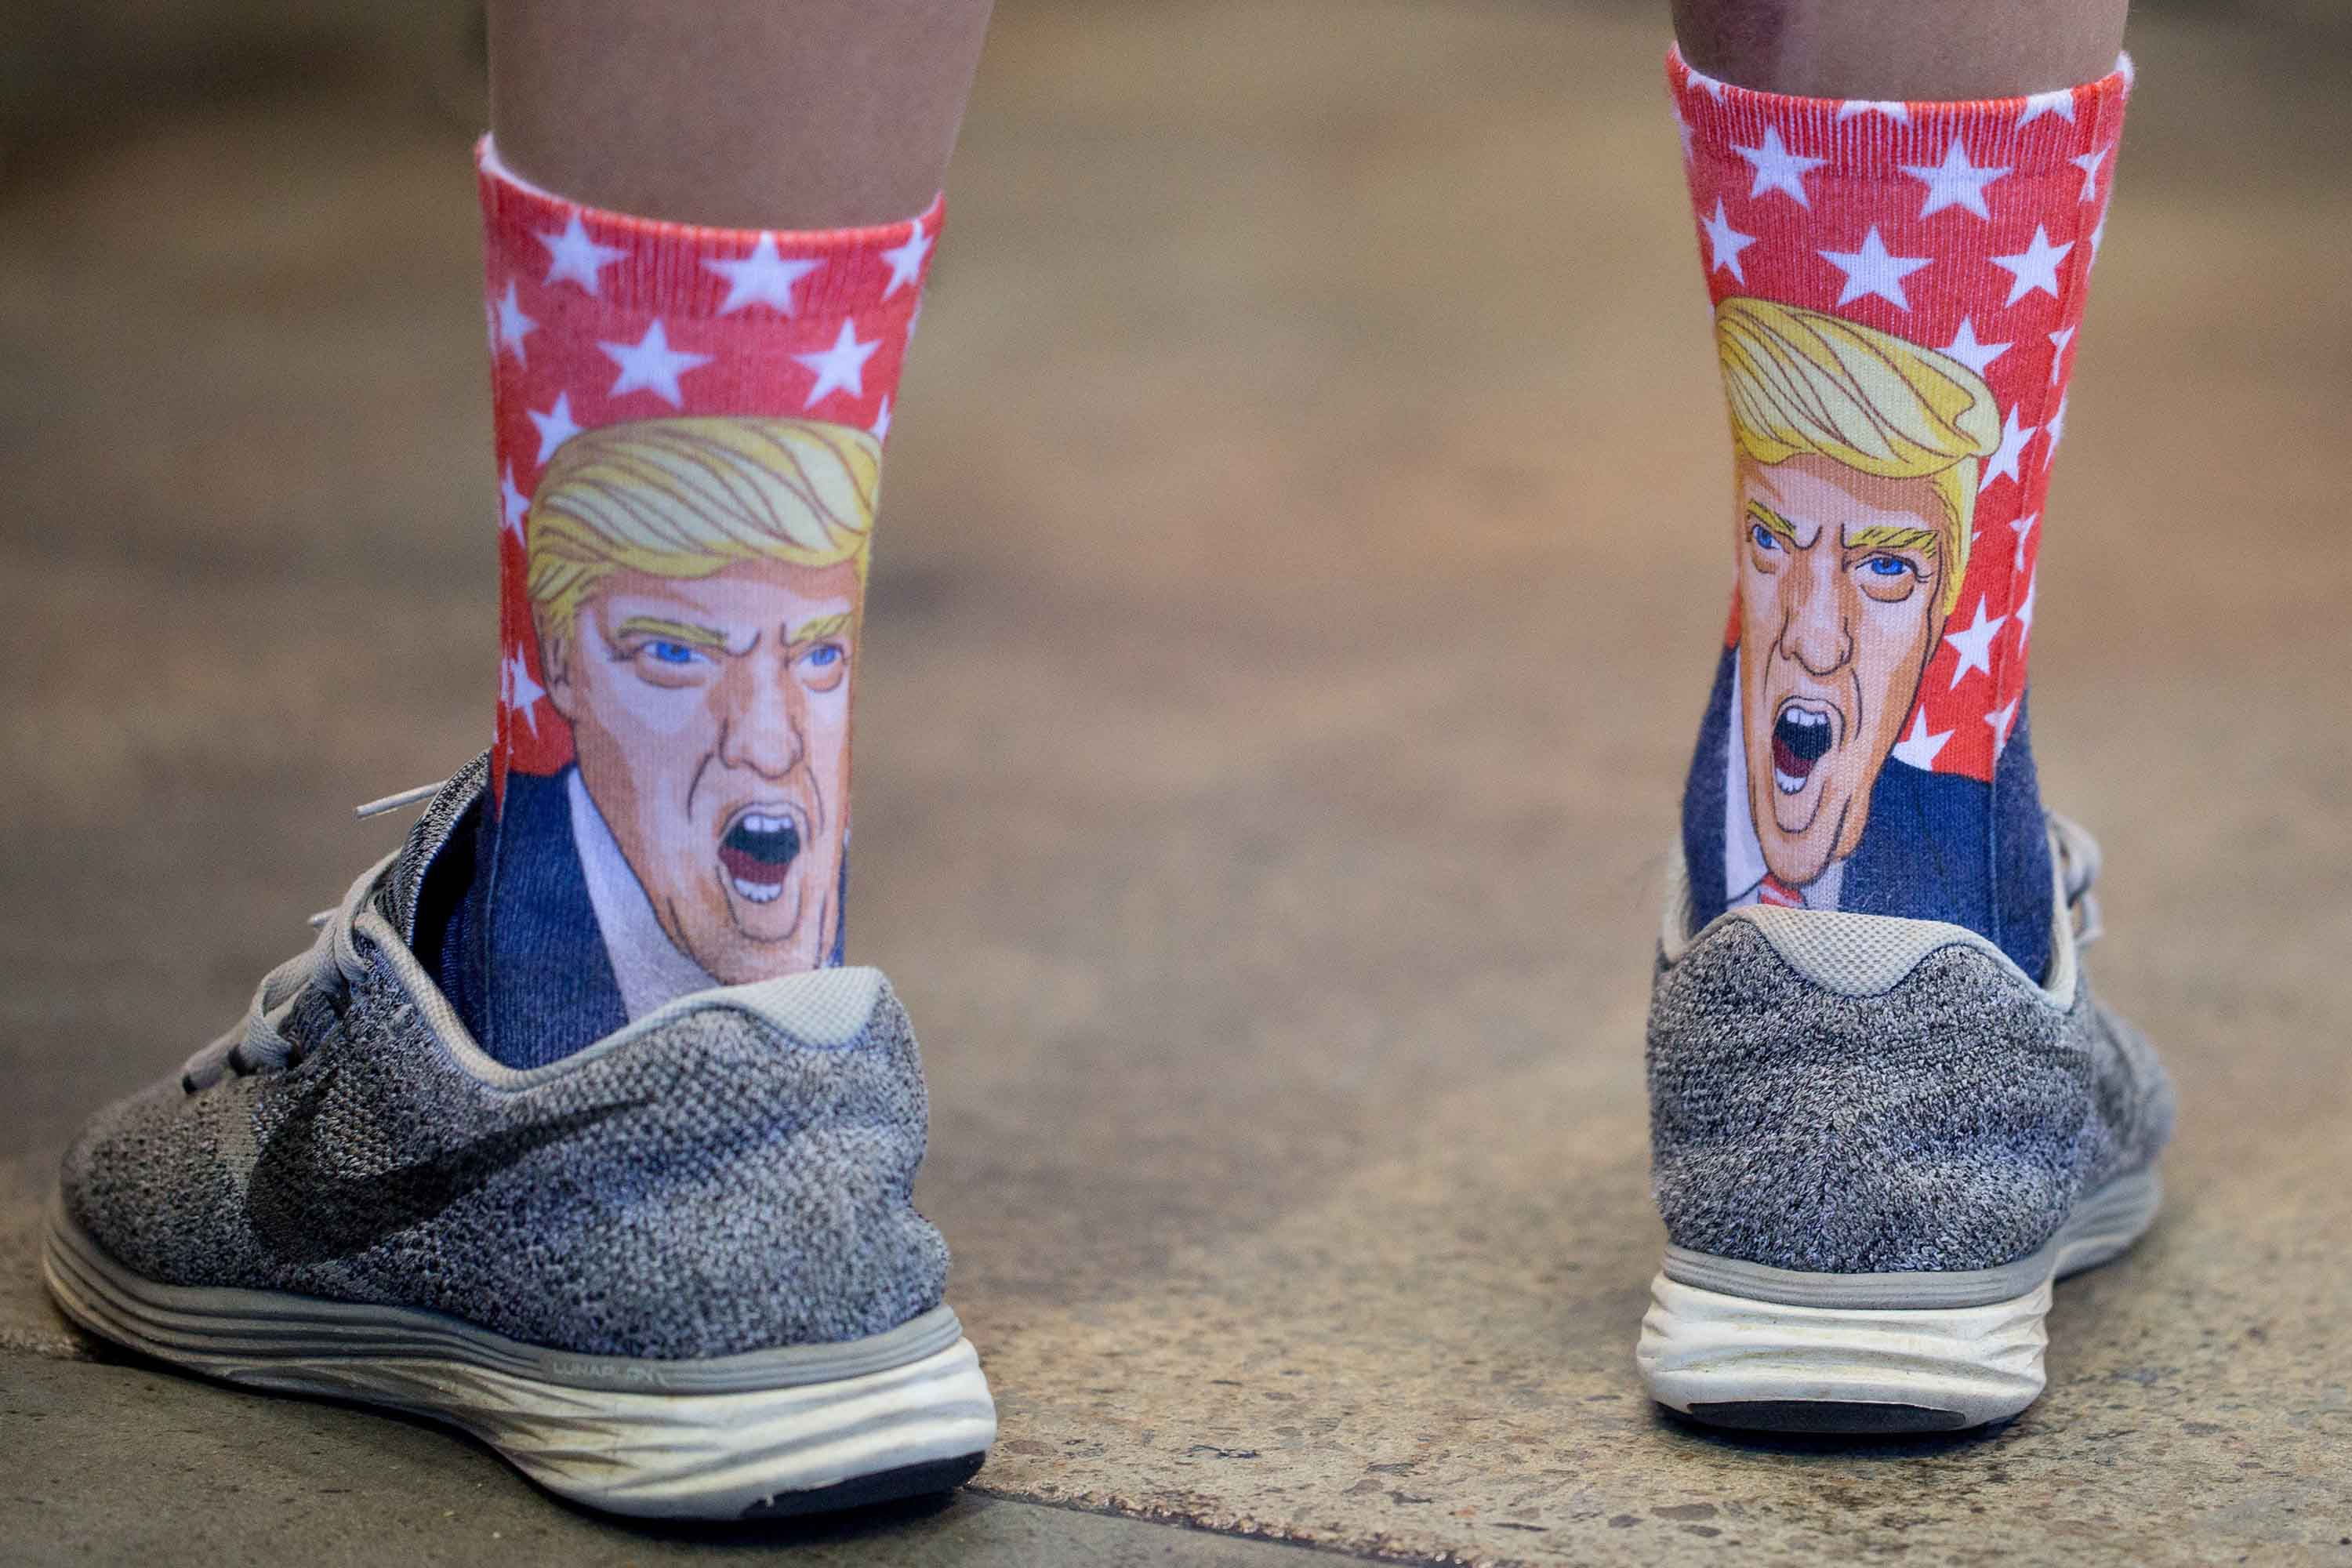 A supporter sports Donald Trump socks prior to the Republican candidate's campaign stop at Dorton Arena Monday, Nov. 7, 2016 in Raleigh N.C. It's the final day before Election Day. (Jill Knight/Raleigh News & Observer/TNS)